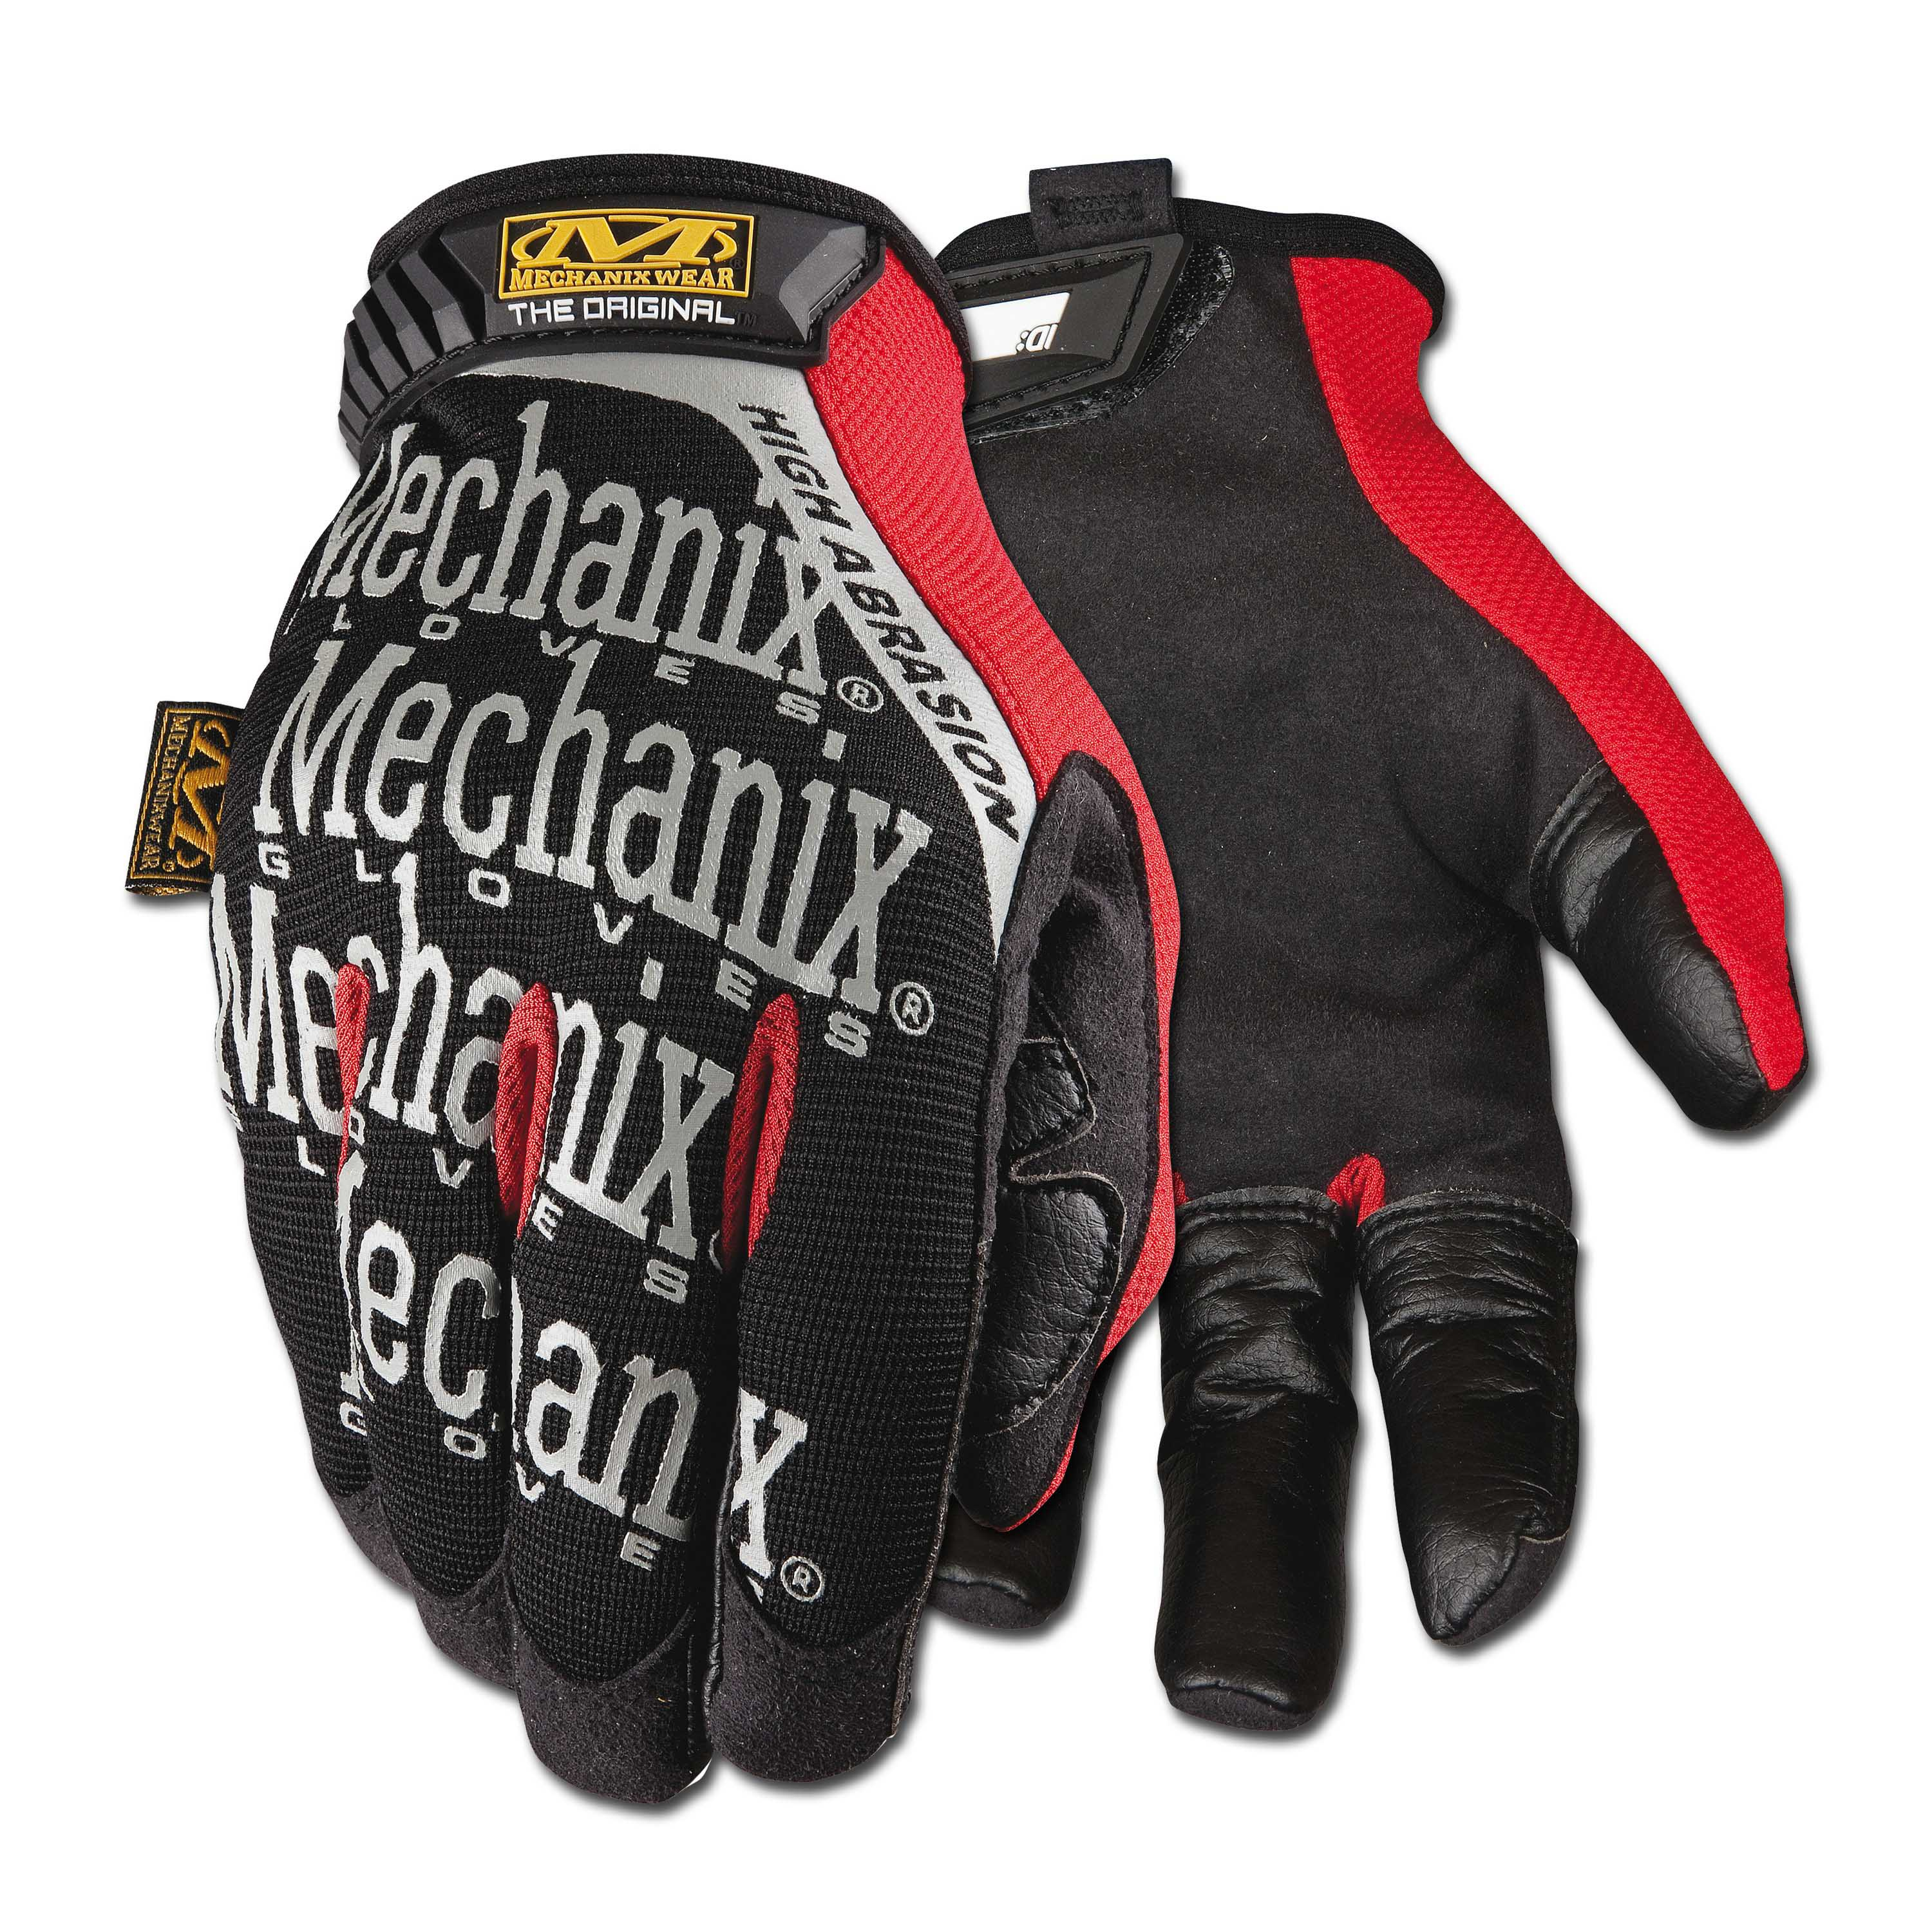 Handschuhe Mechanix Wear Original High Abrasion